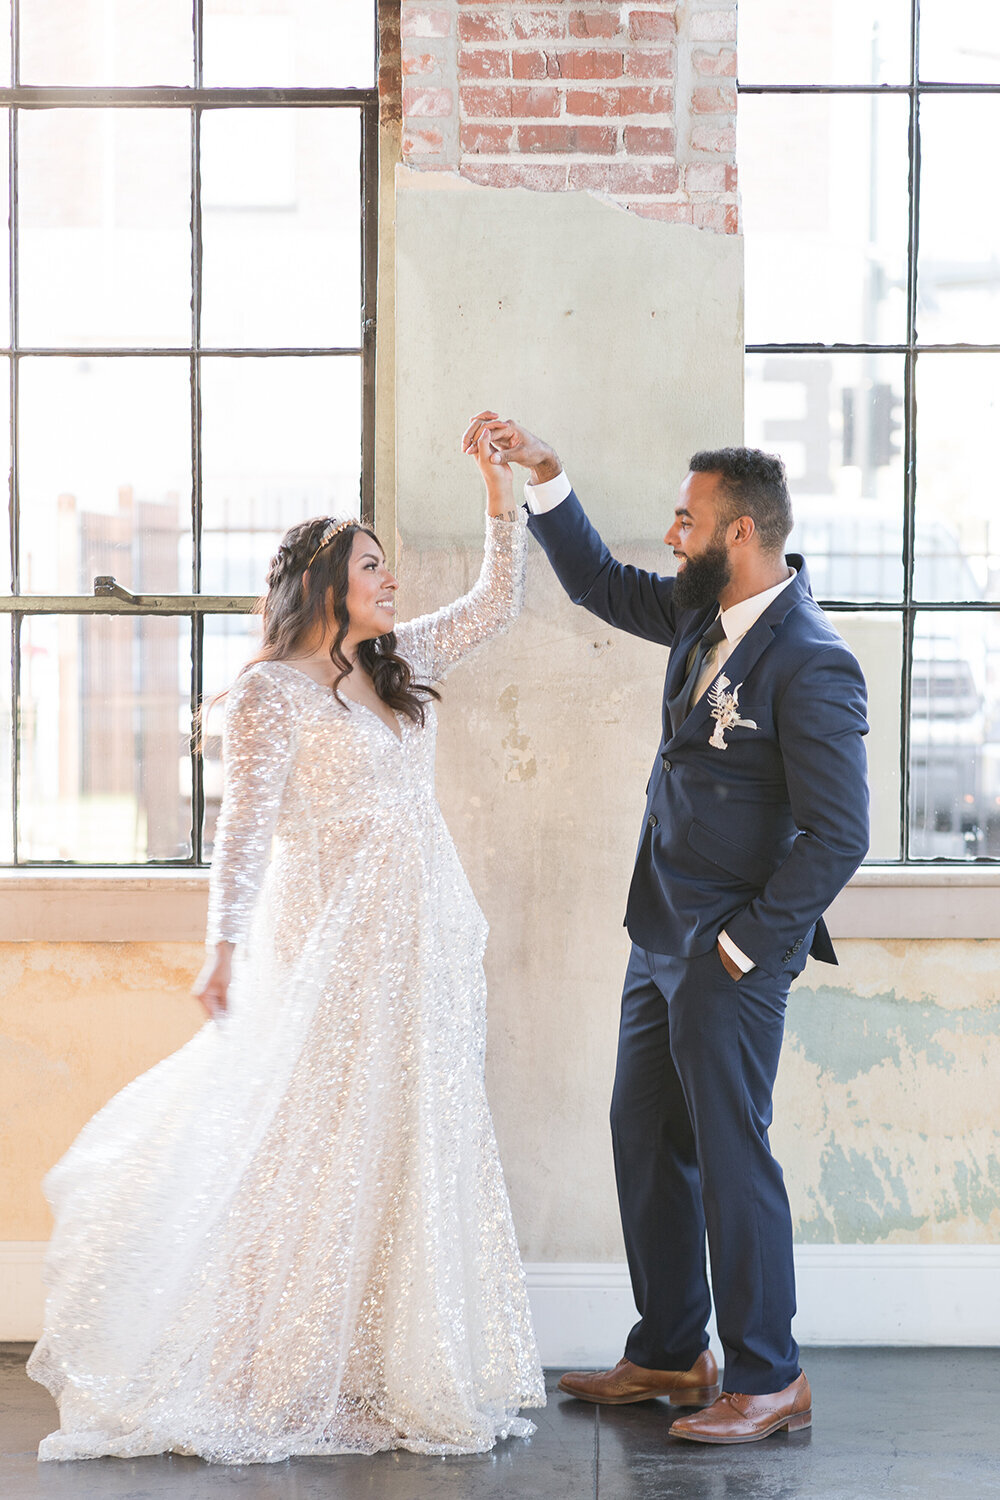 A groom twirls his bride at their reno, nv micro wedding by Adrienne and Dani Photography